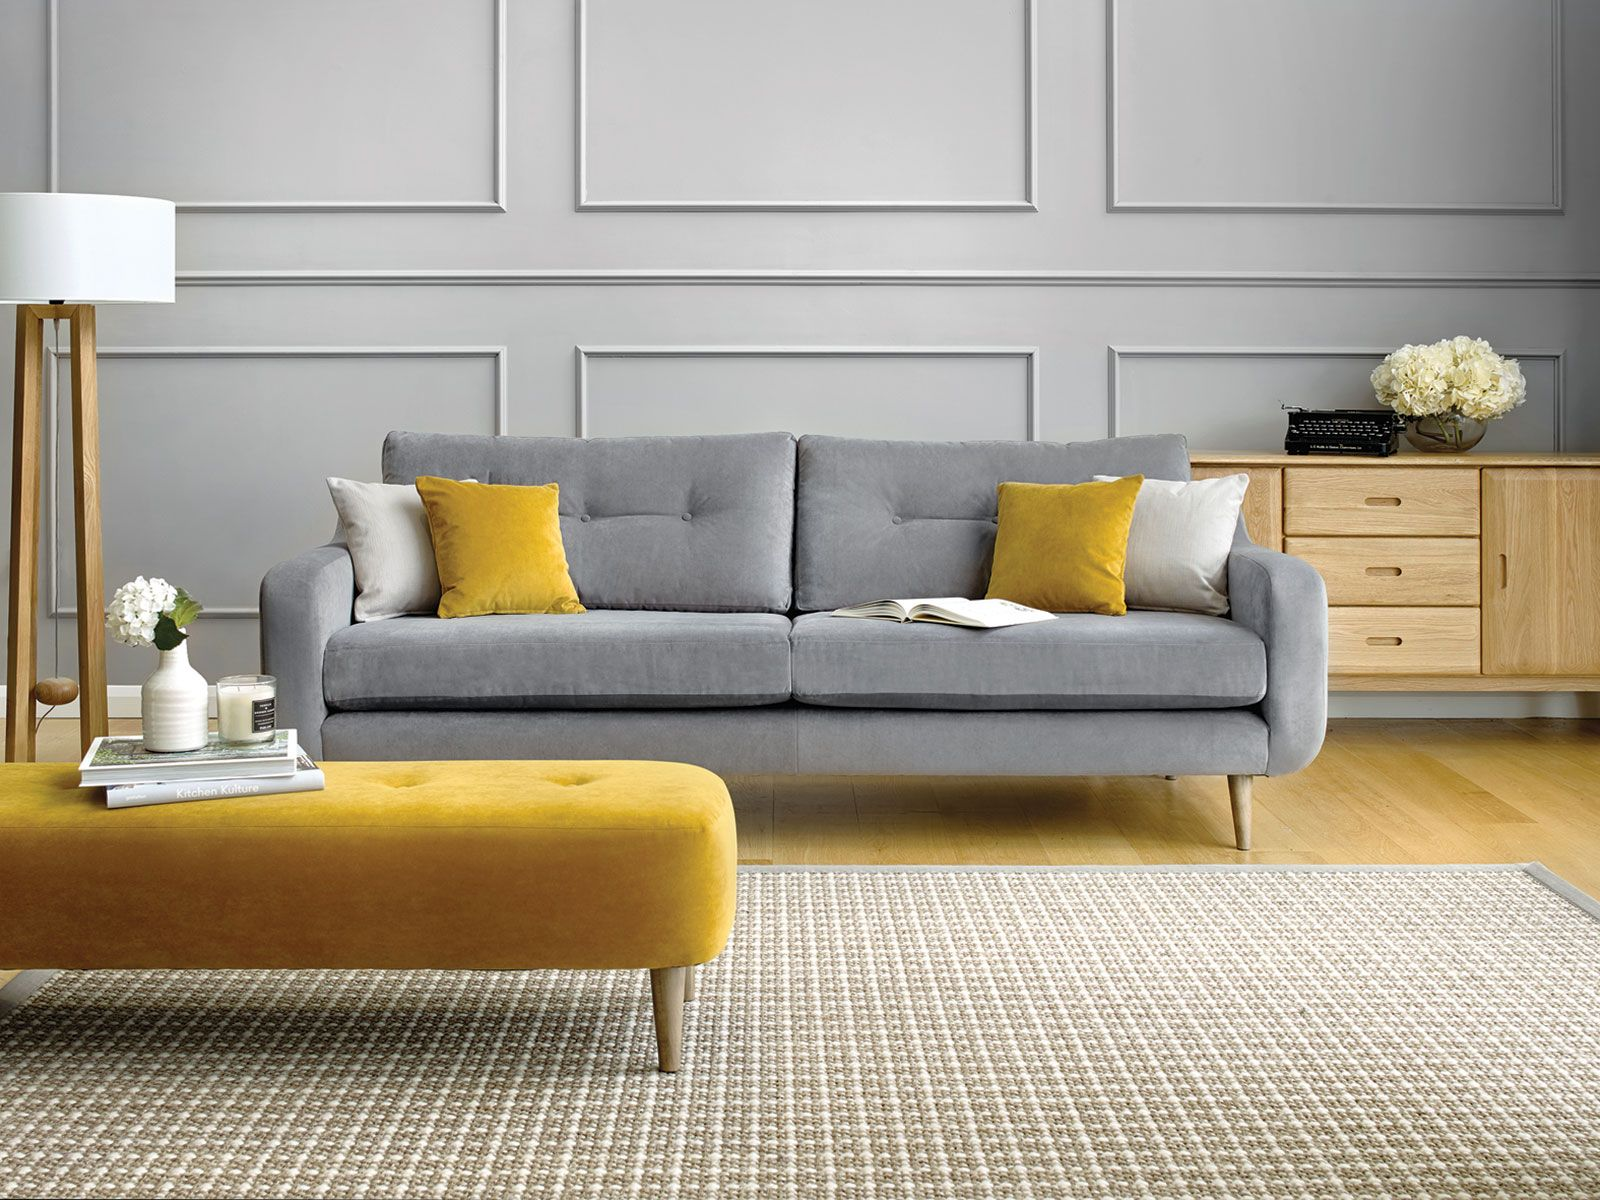 Alfredo Extra Large Sofa With Retro Flair Choose From A Great Range Of On Trend